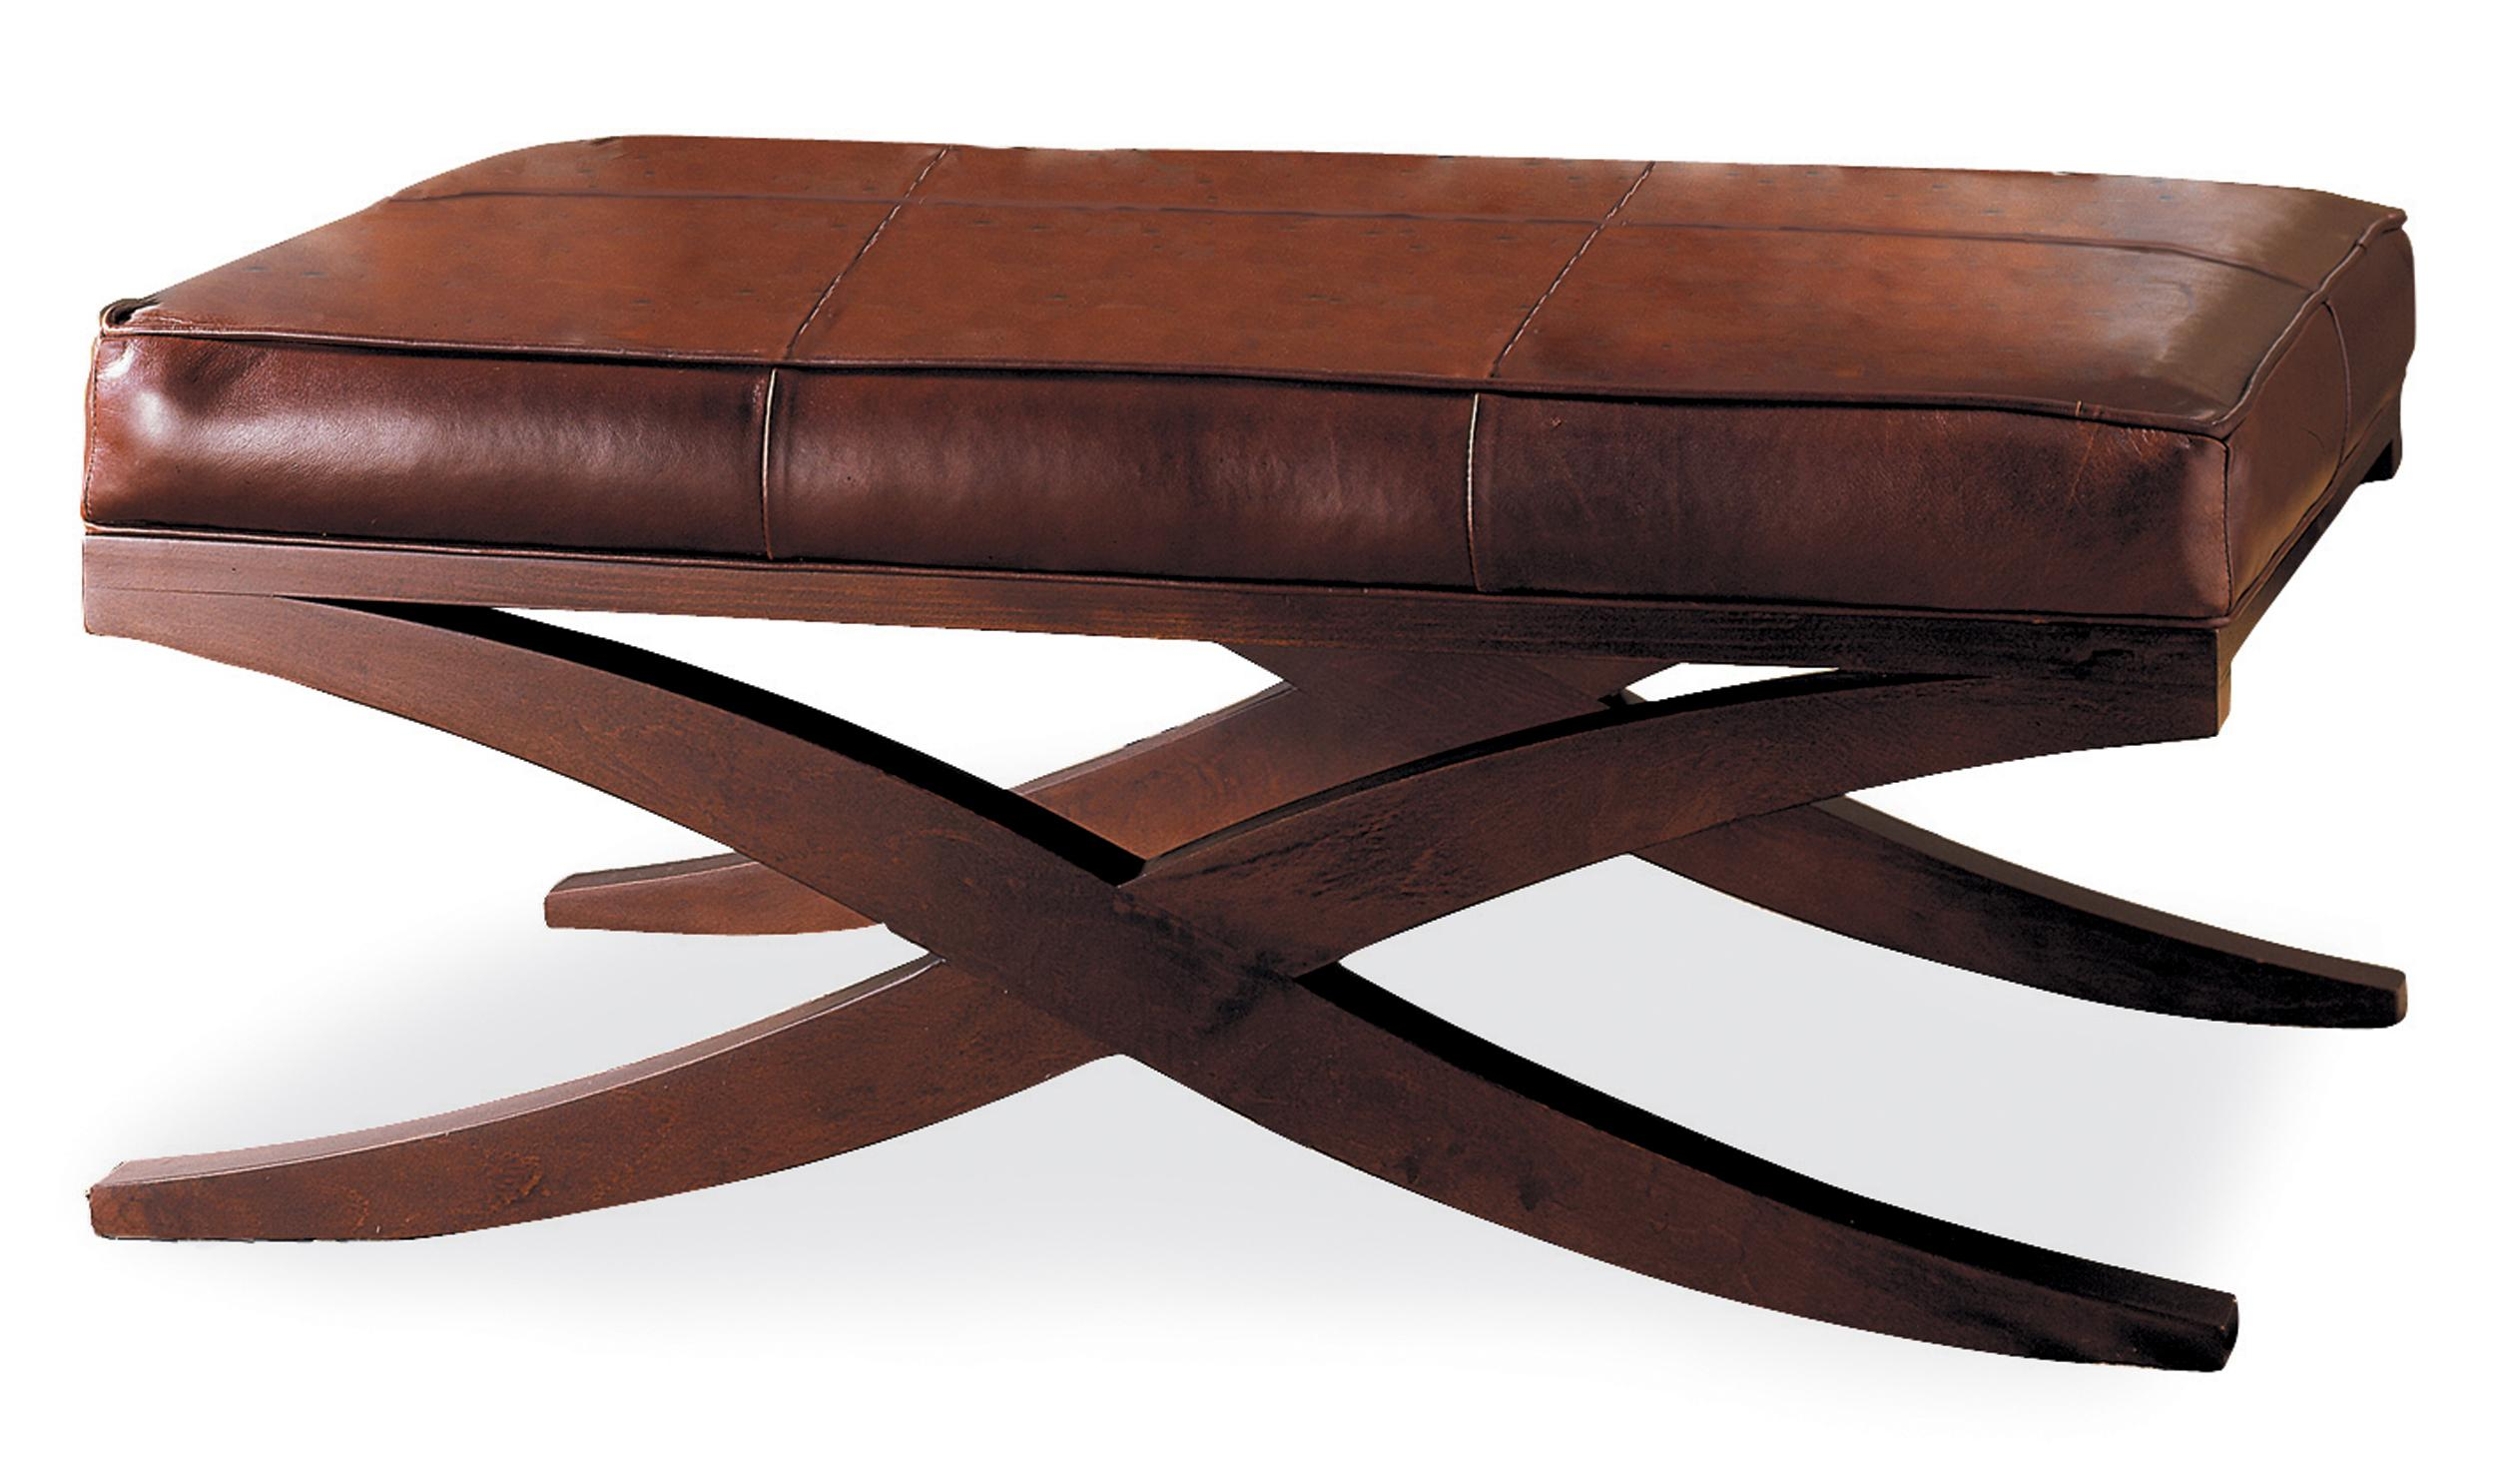 Axis Contemporary Upholstered Accent Bench With X Base By Sam Moore